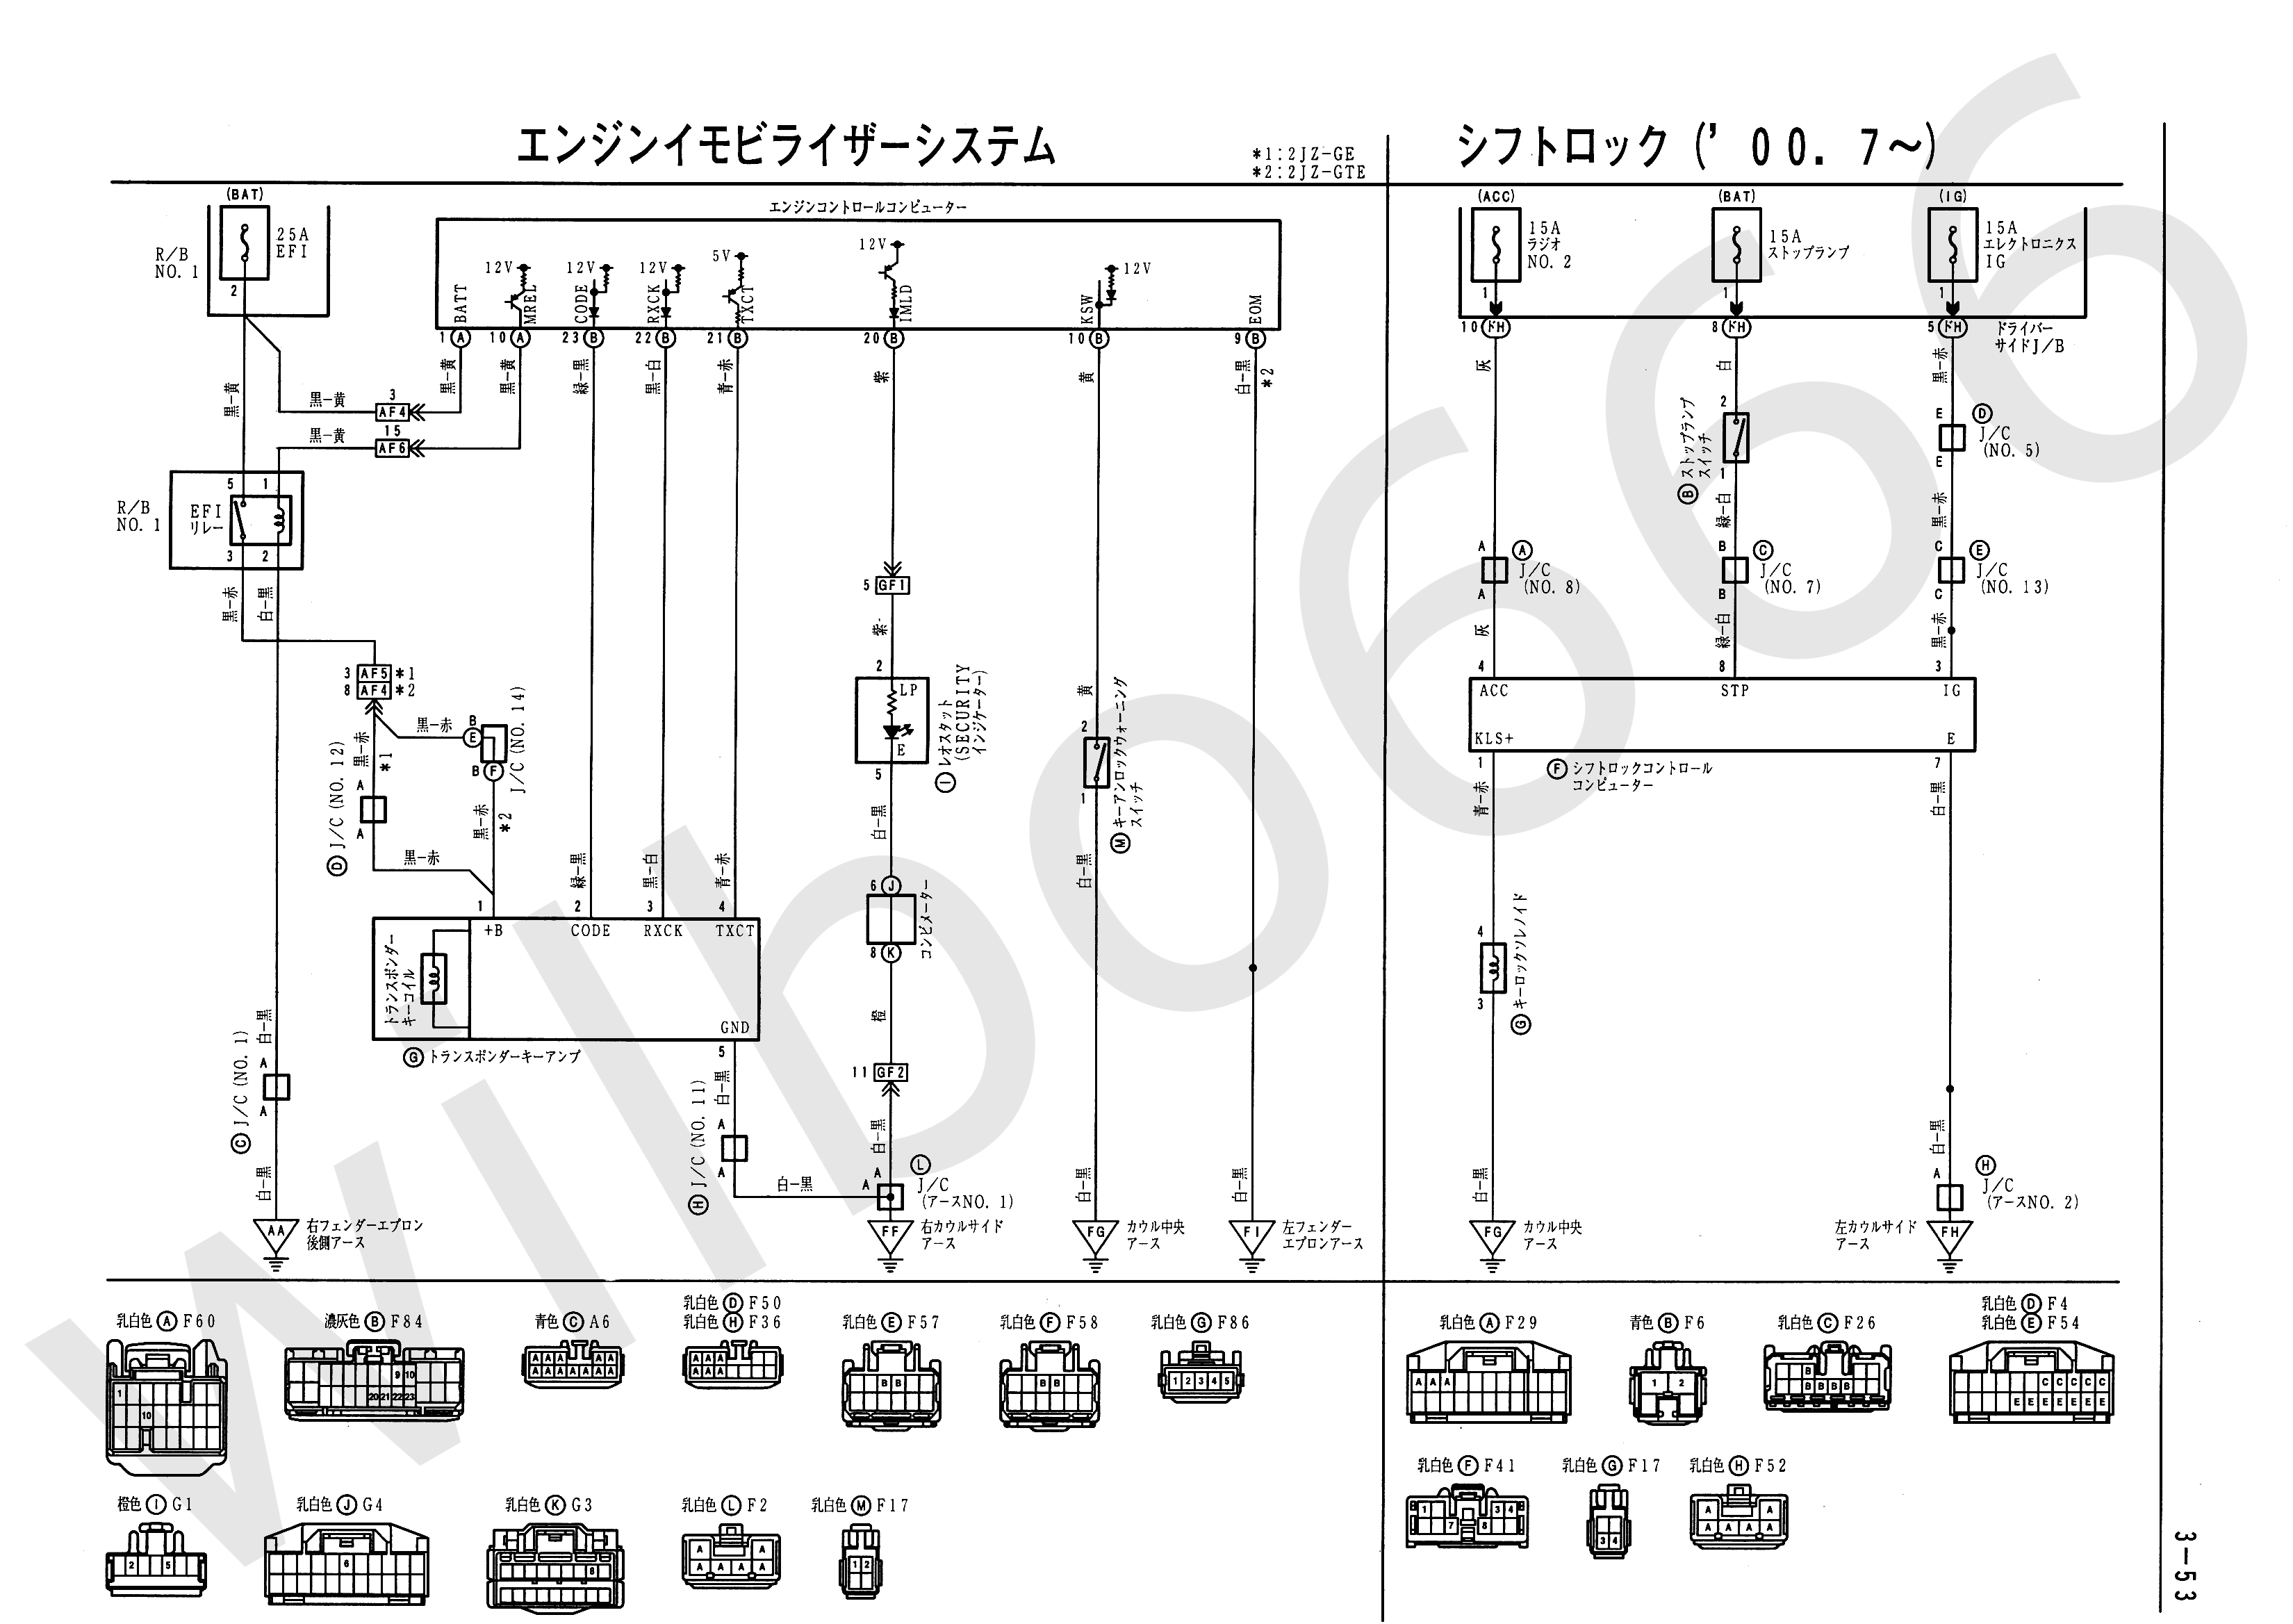 Wiring Diagram For Toyotum Estima